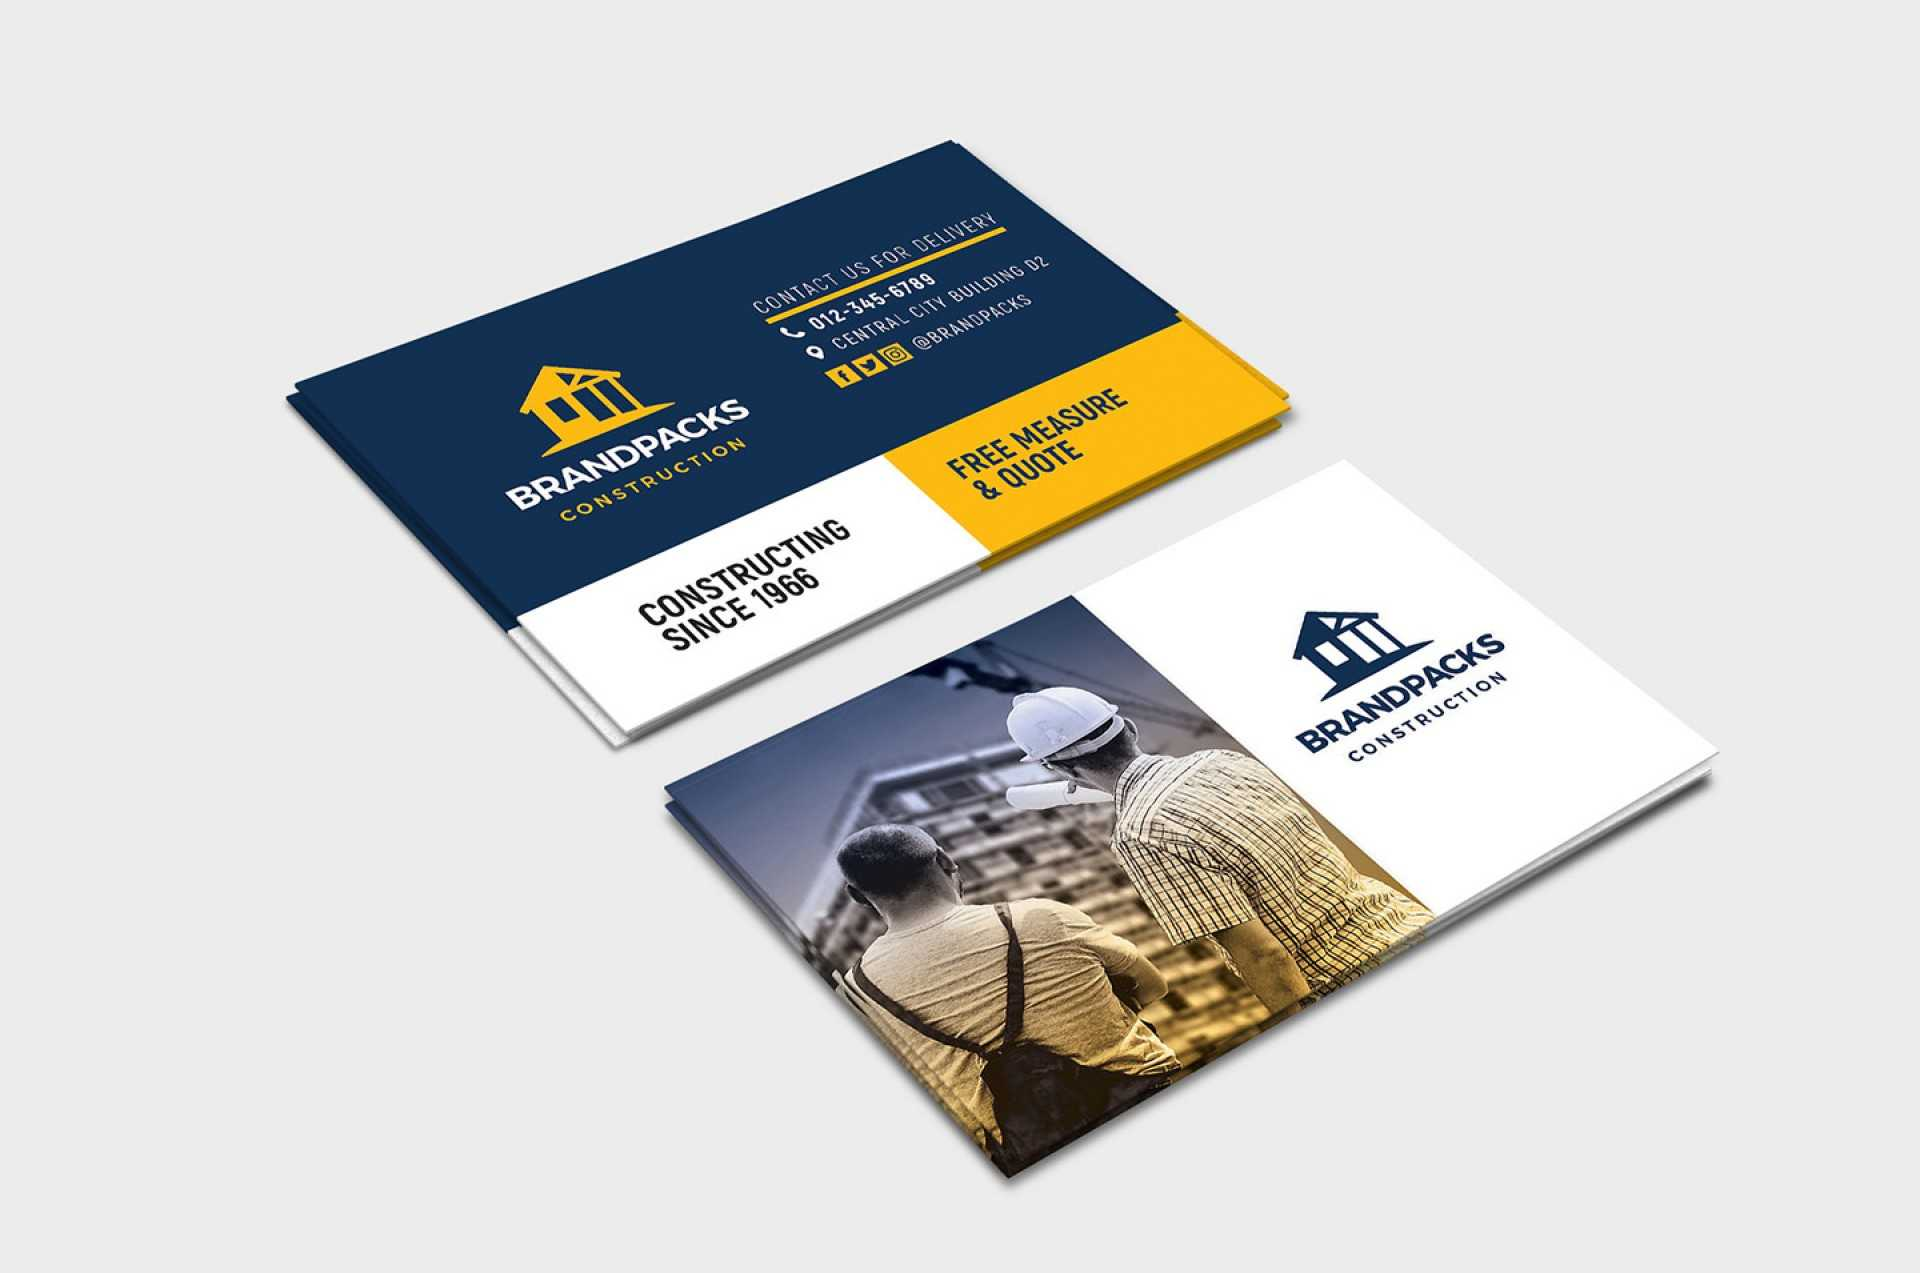 003 Construction Business Card Templates Template With Construction Business Card Templates Download Free